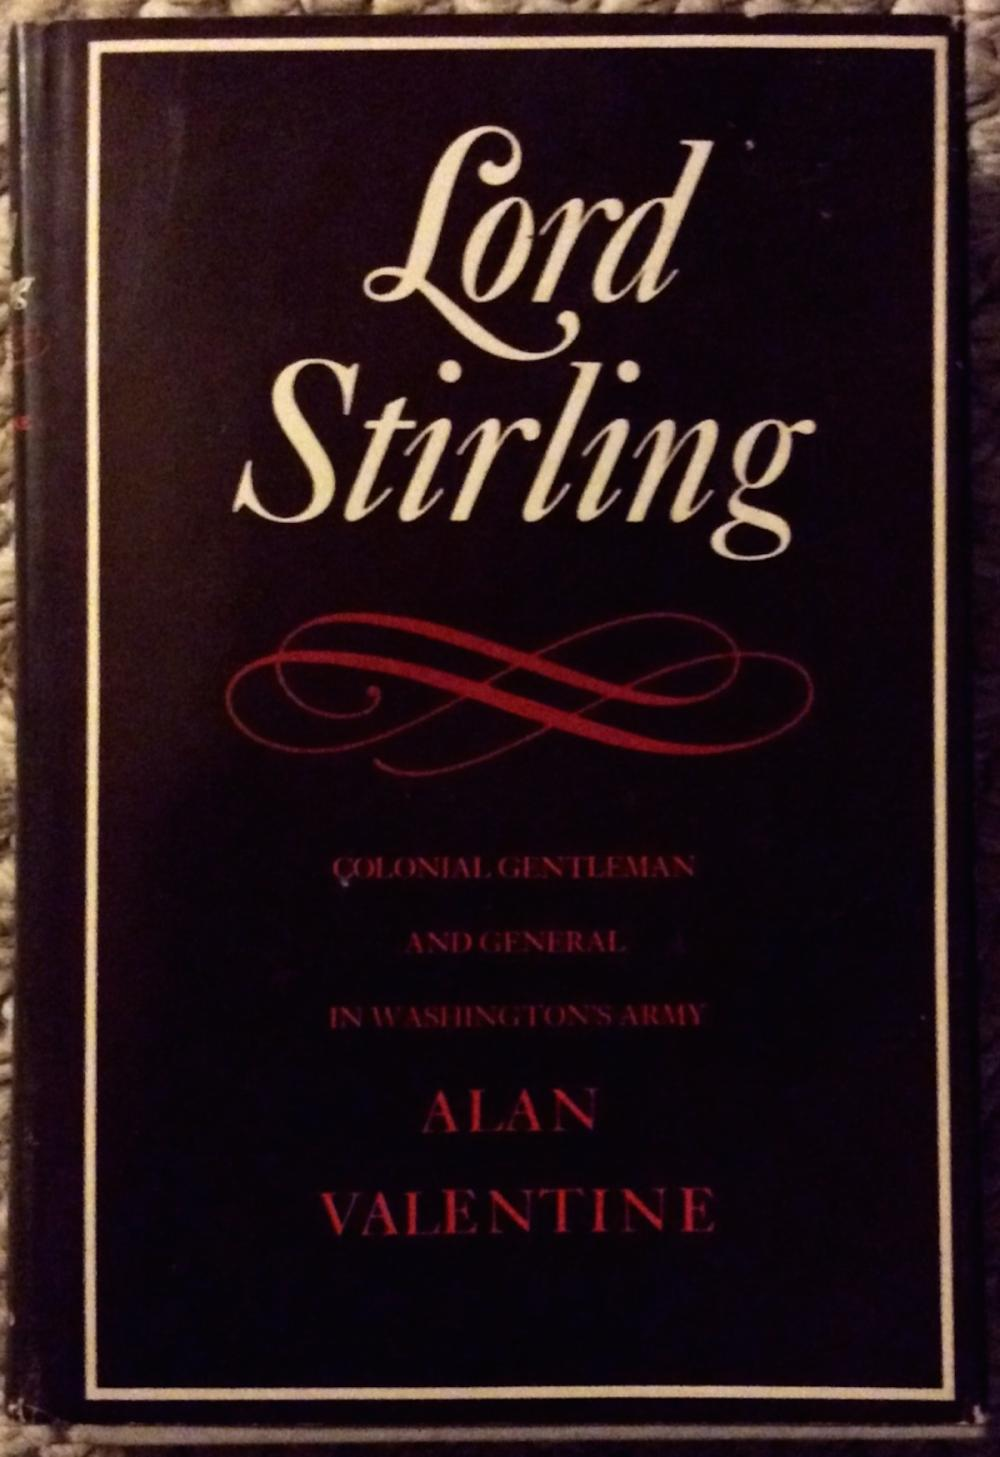 """Lord Stirling: Colonial Gentleman & General in Washington's Army"" by Alan Valentine VINTAGE 1969 Hardcover American Revolution Biography Of Little Known American General 1st Edition 1st Printing In DJ"